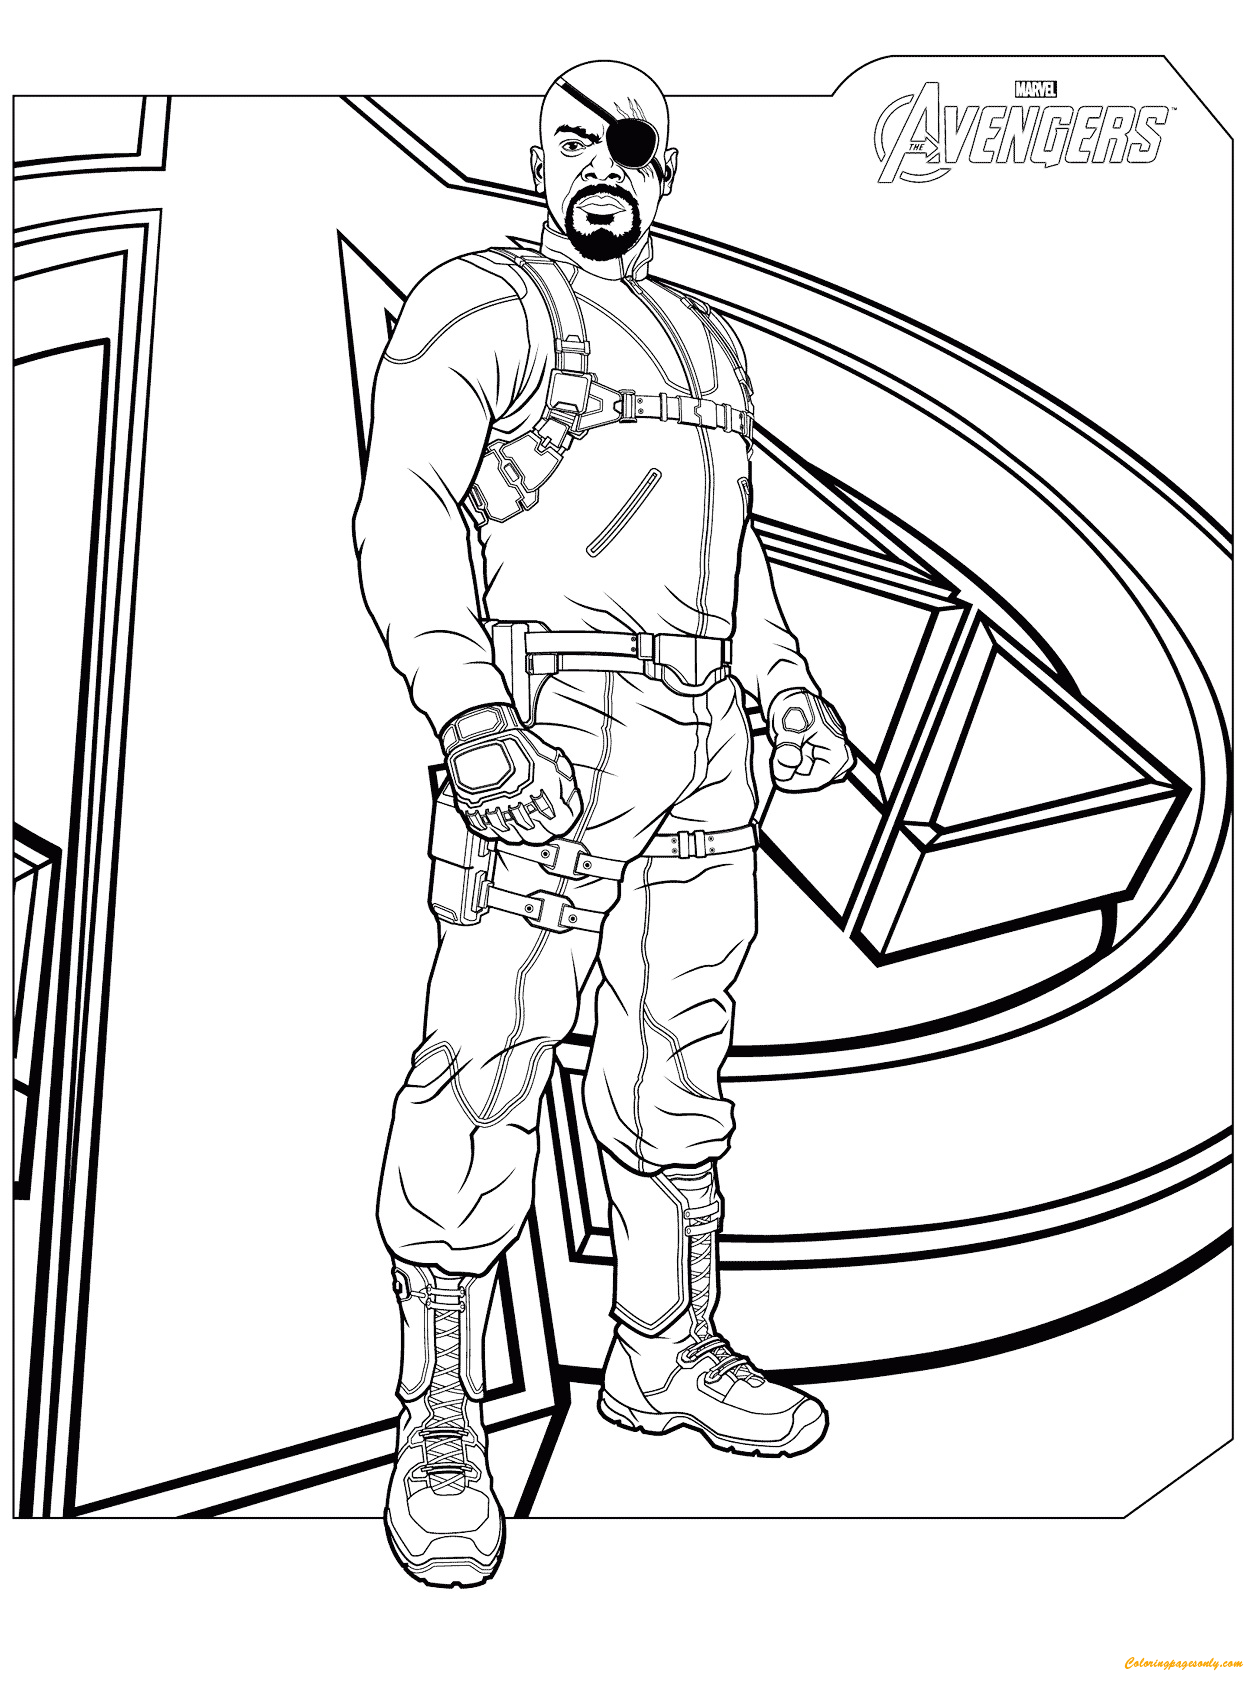 Download Avengers Coloring Pages Here Blackwidow: Nick Fury From Avengers Coloring Page